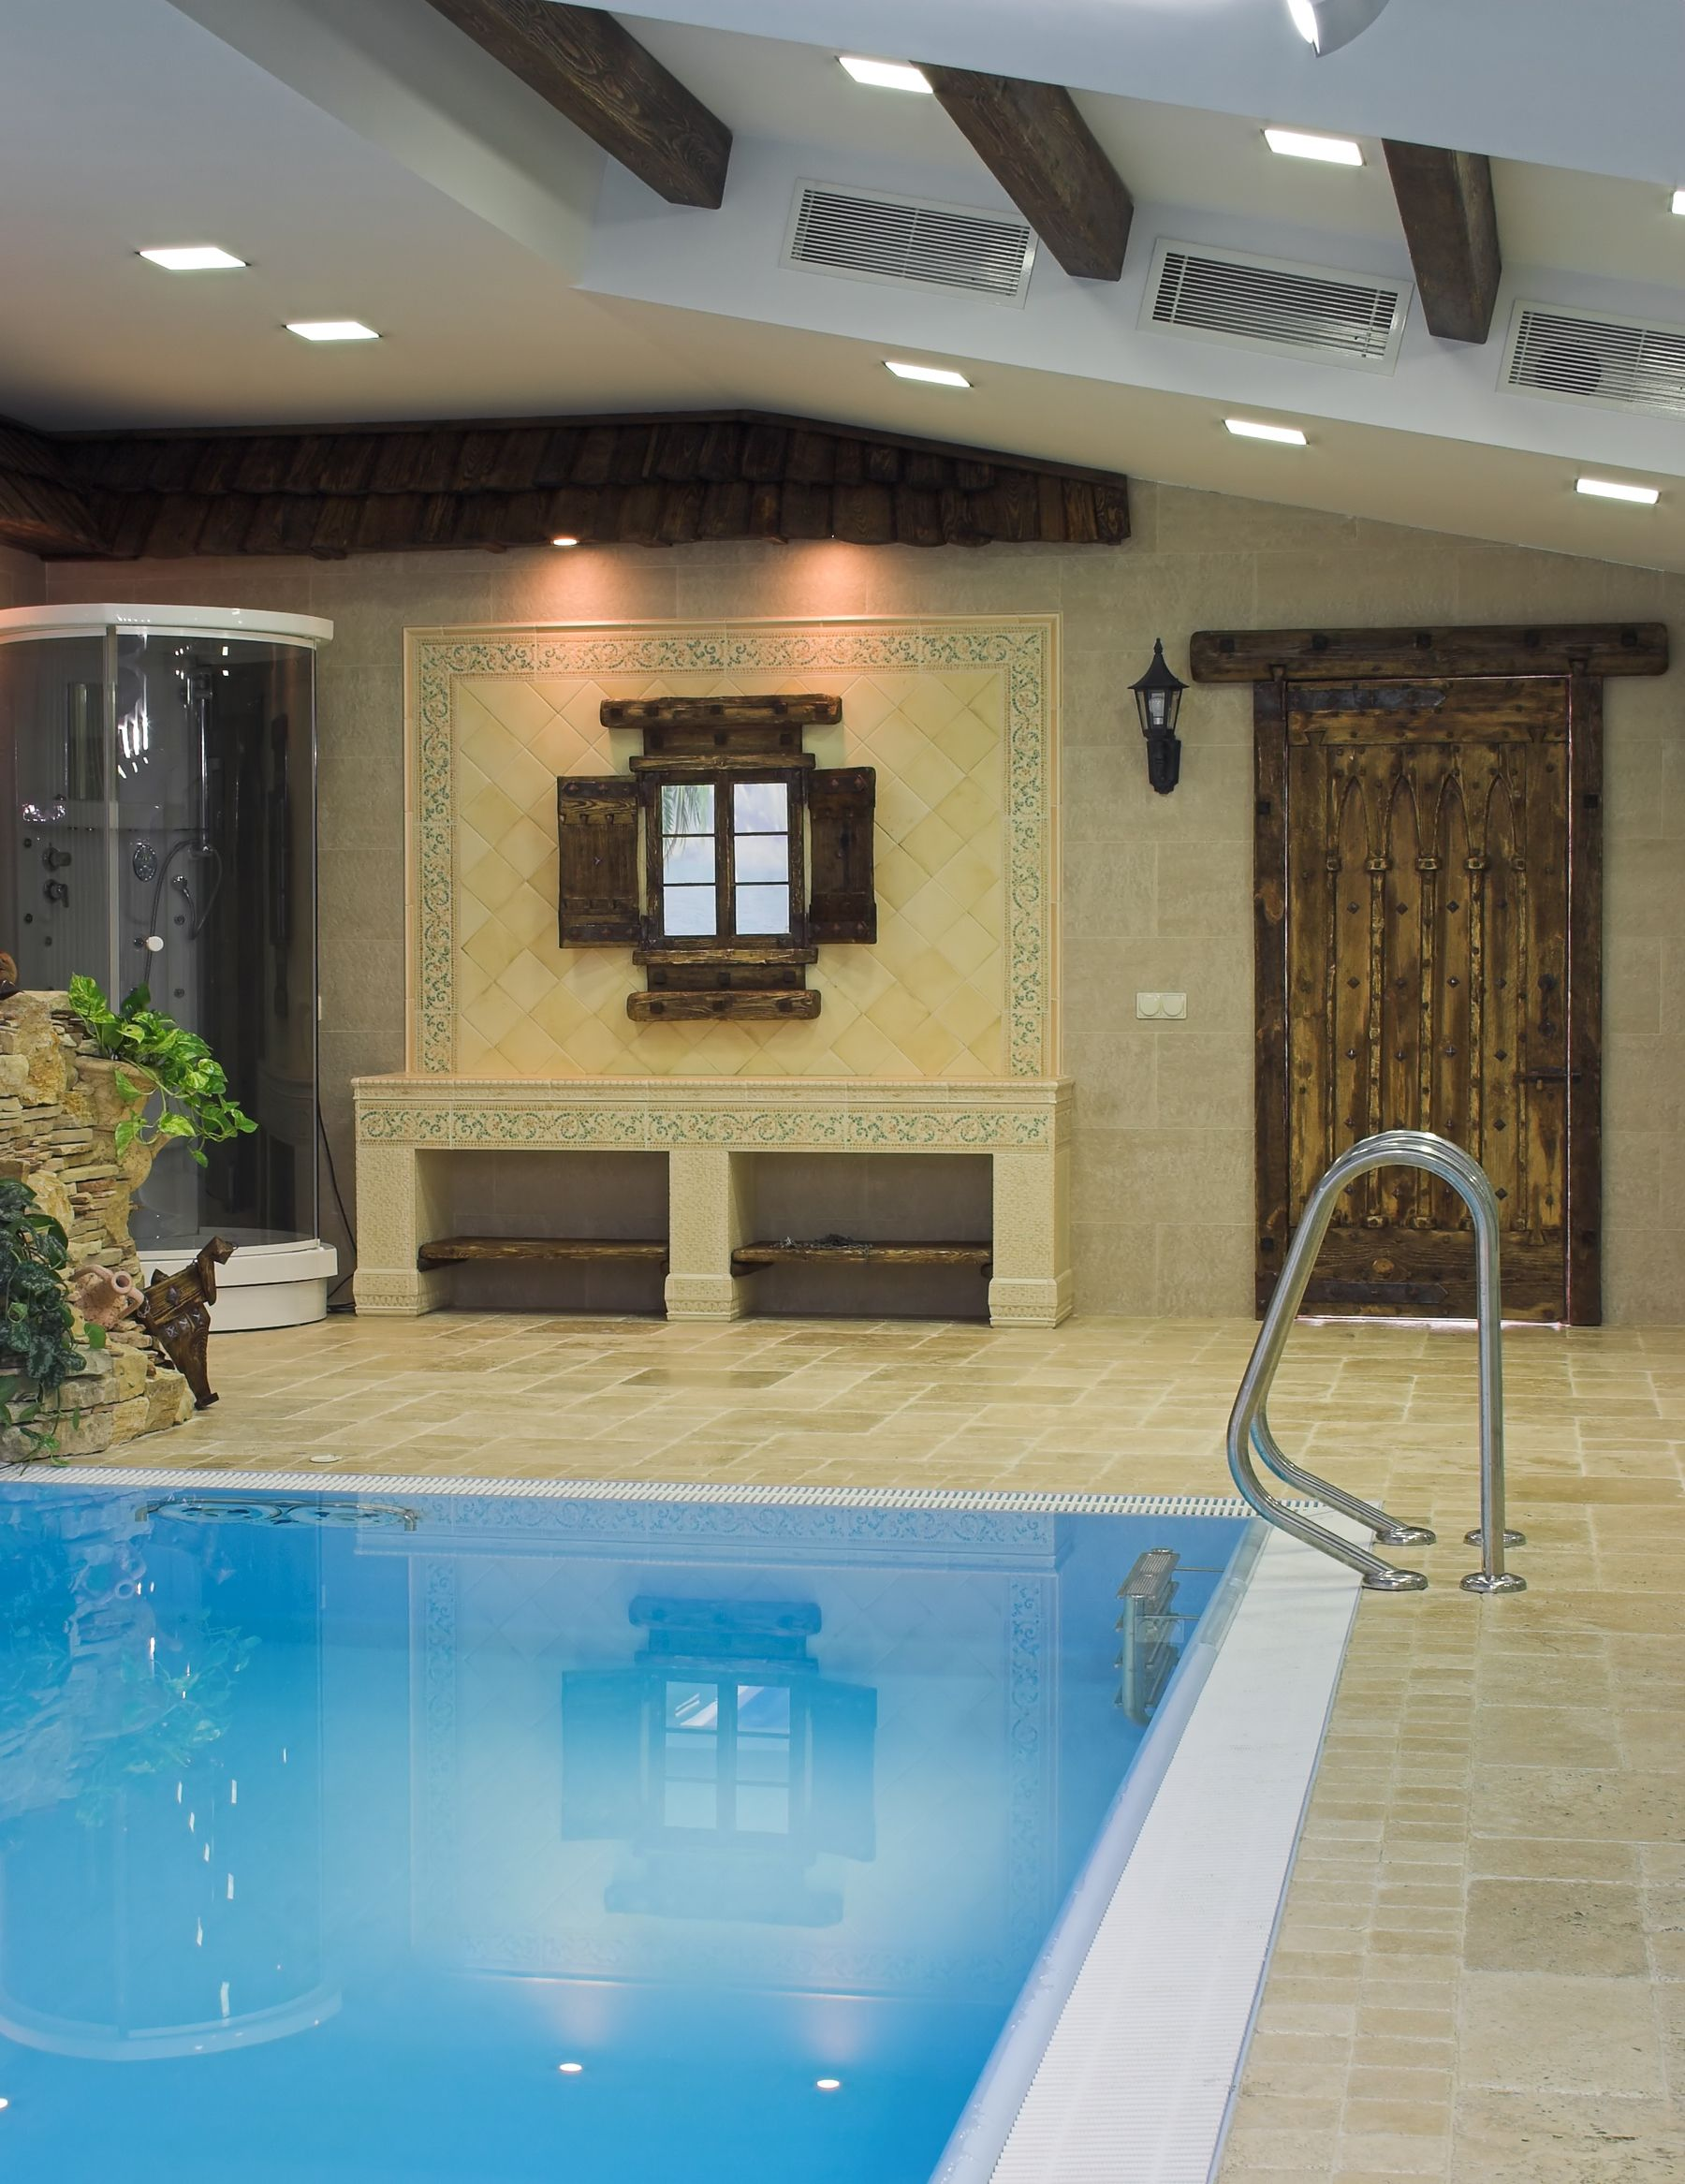 45 Screened In Covered And Indoor Pool Designs Indoor Pool Design Swimming Pool Designs Indoor Pool